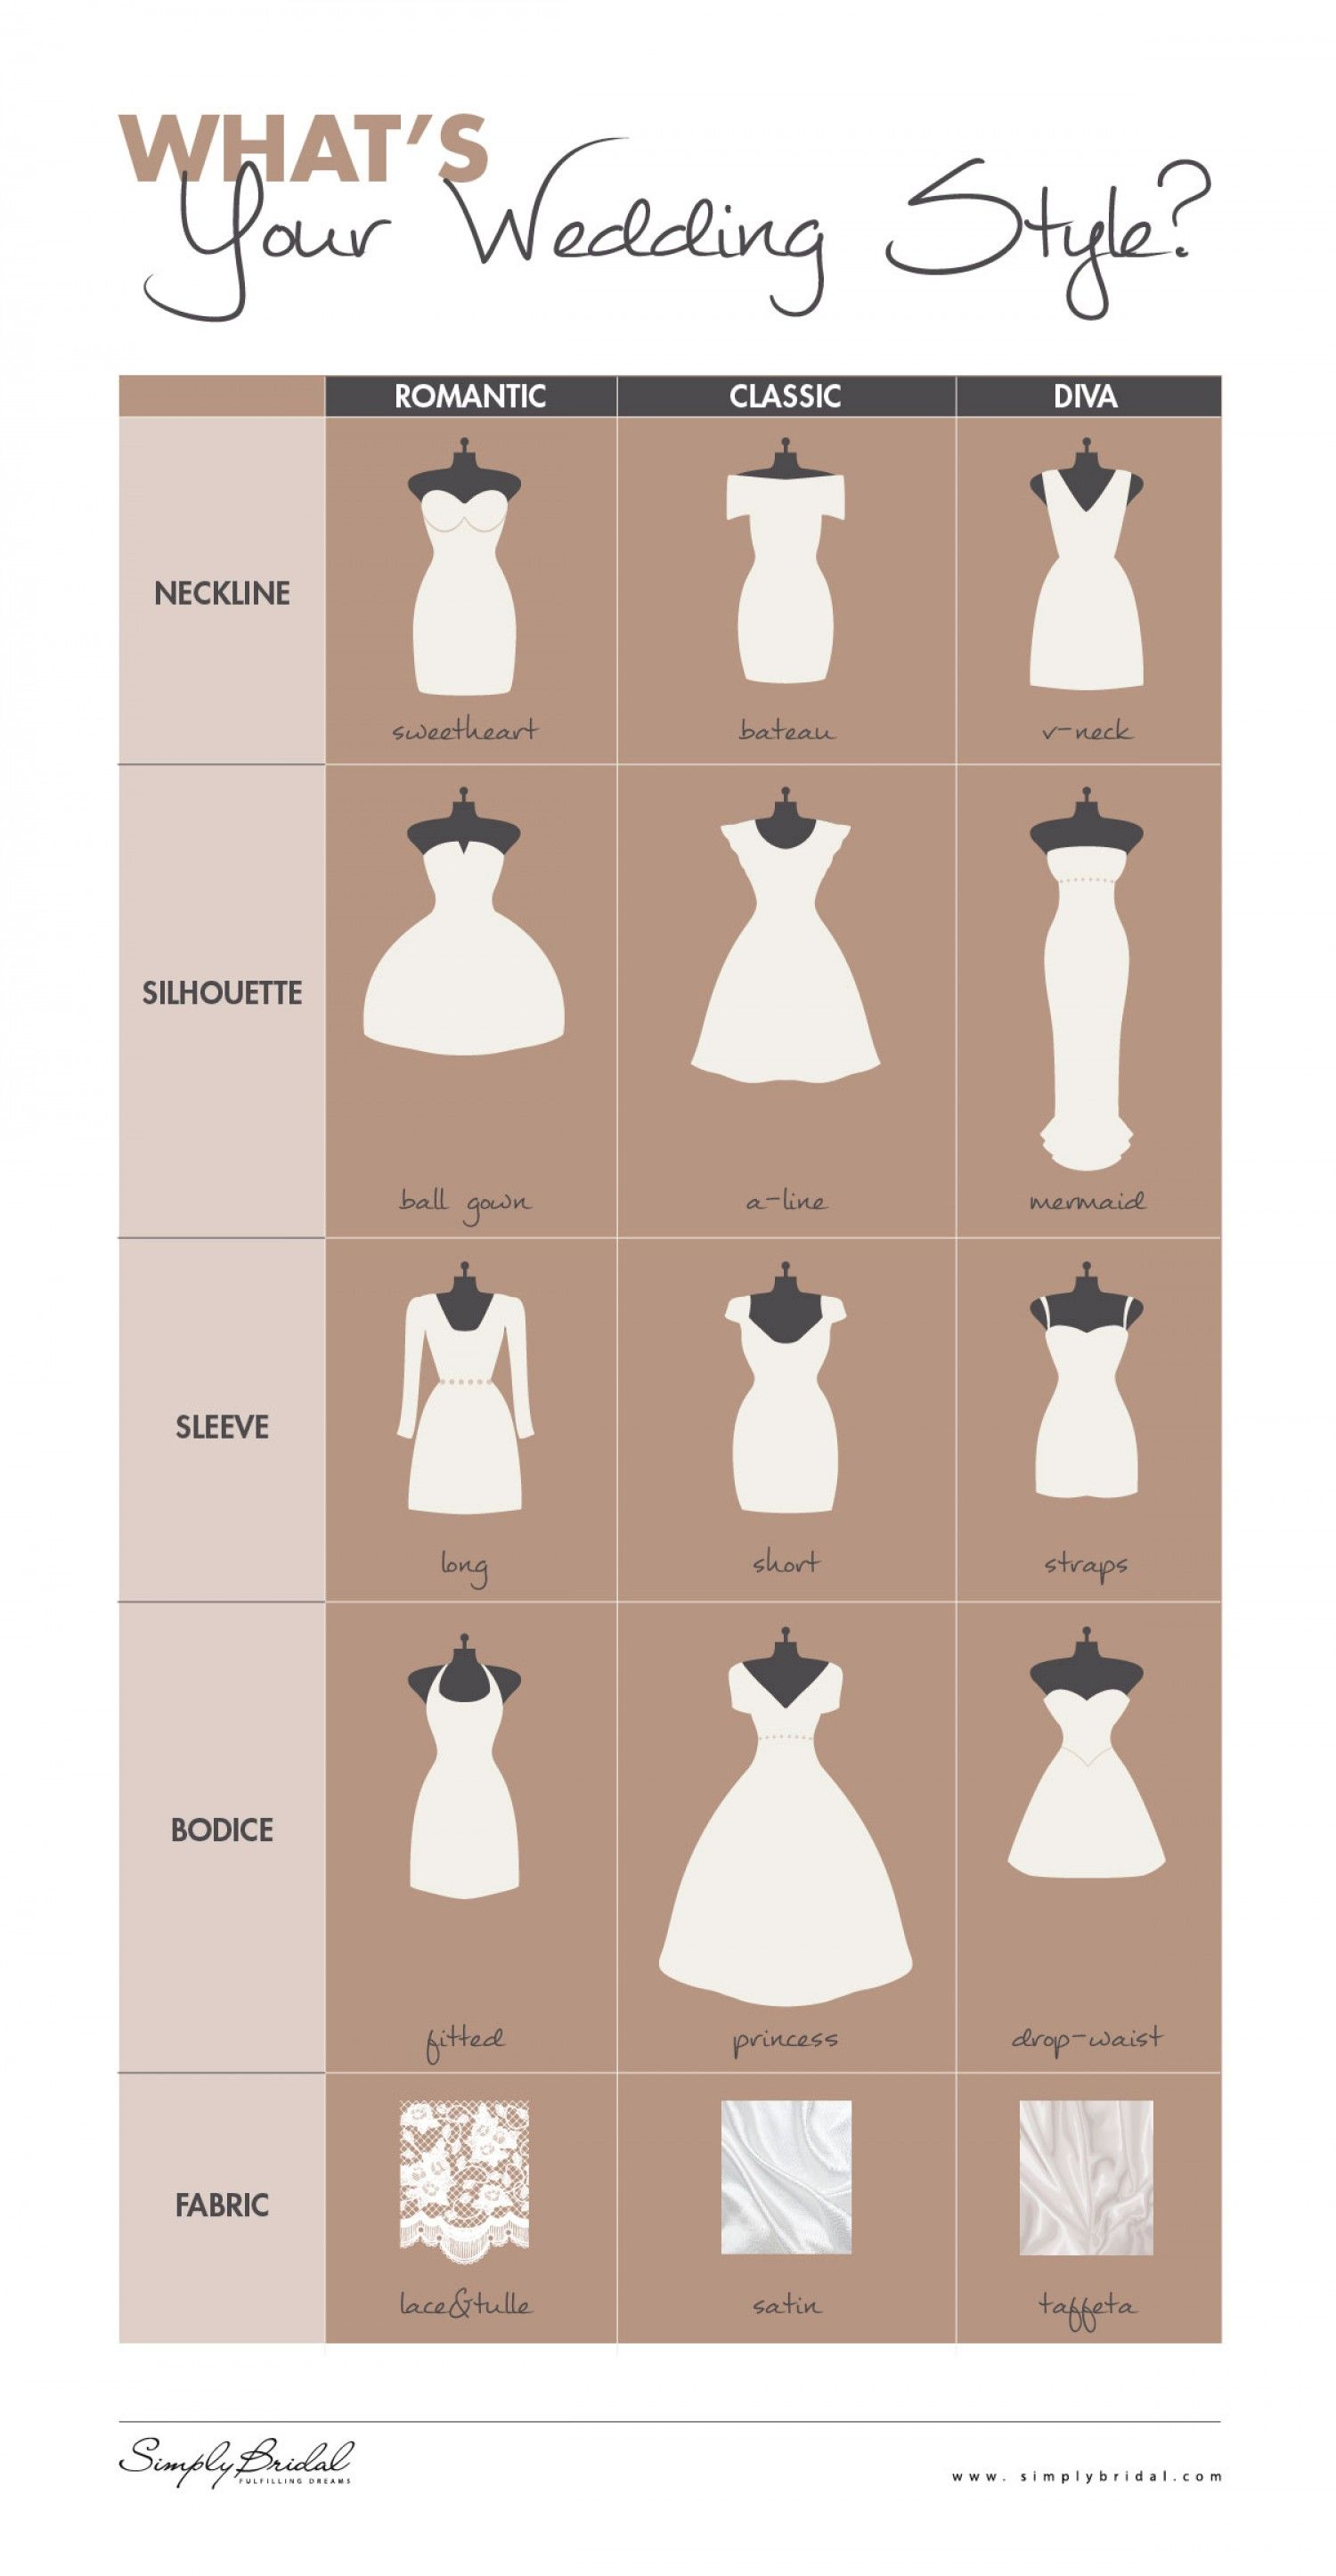 What Your Wedding Style